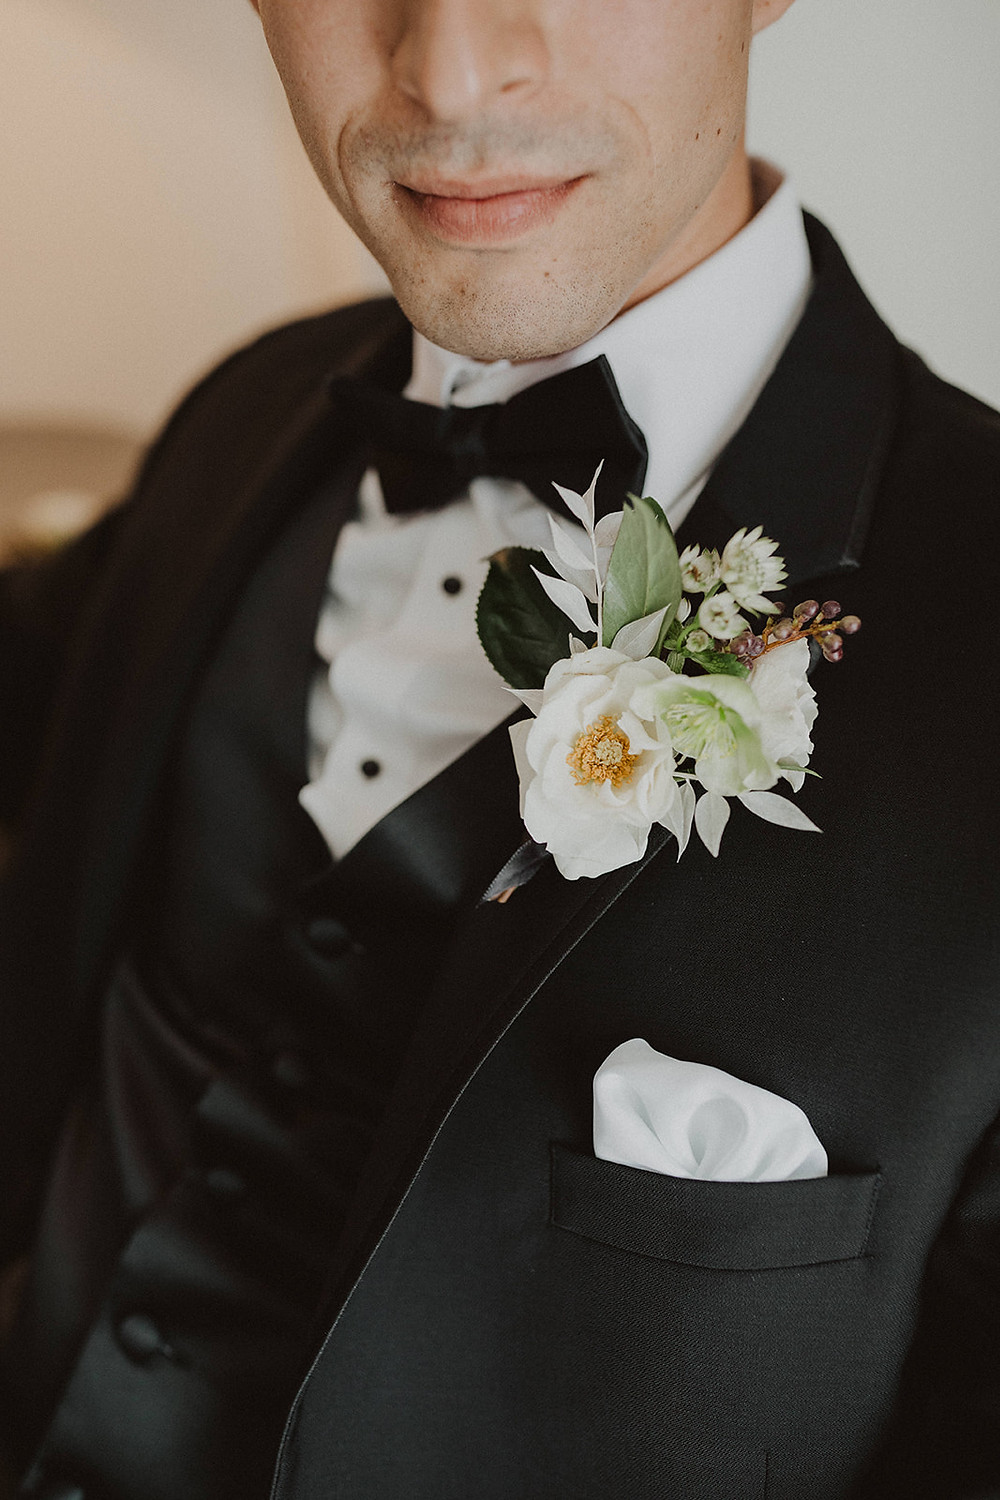 Elegant garden style boutonnière for Black Tie wedding in downtown San Diego. #groomsstyle #boutonnières #boutonniere #groom #blacktux #groomsflowers #blacktiewedding #sandiegoweddingflorist #sandiegoflorist #helleboreboutonniere